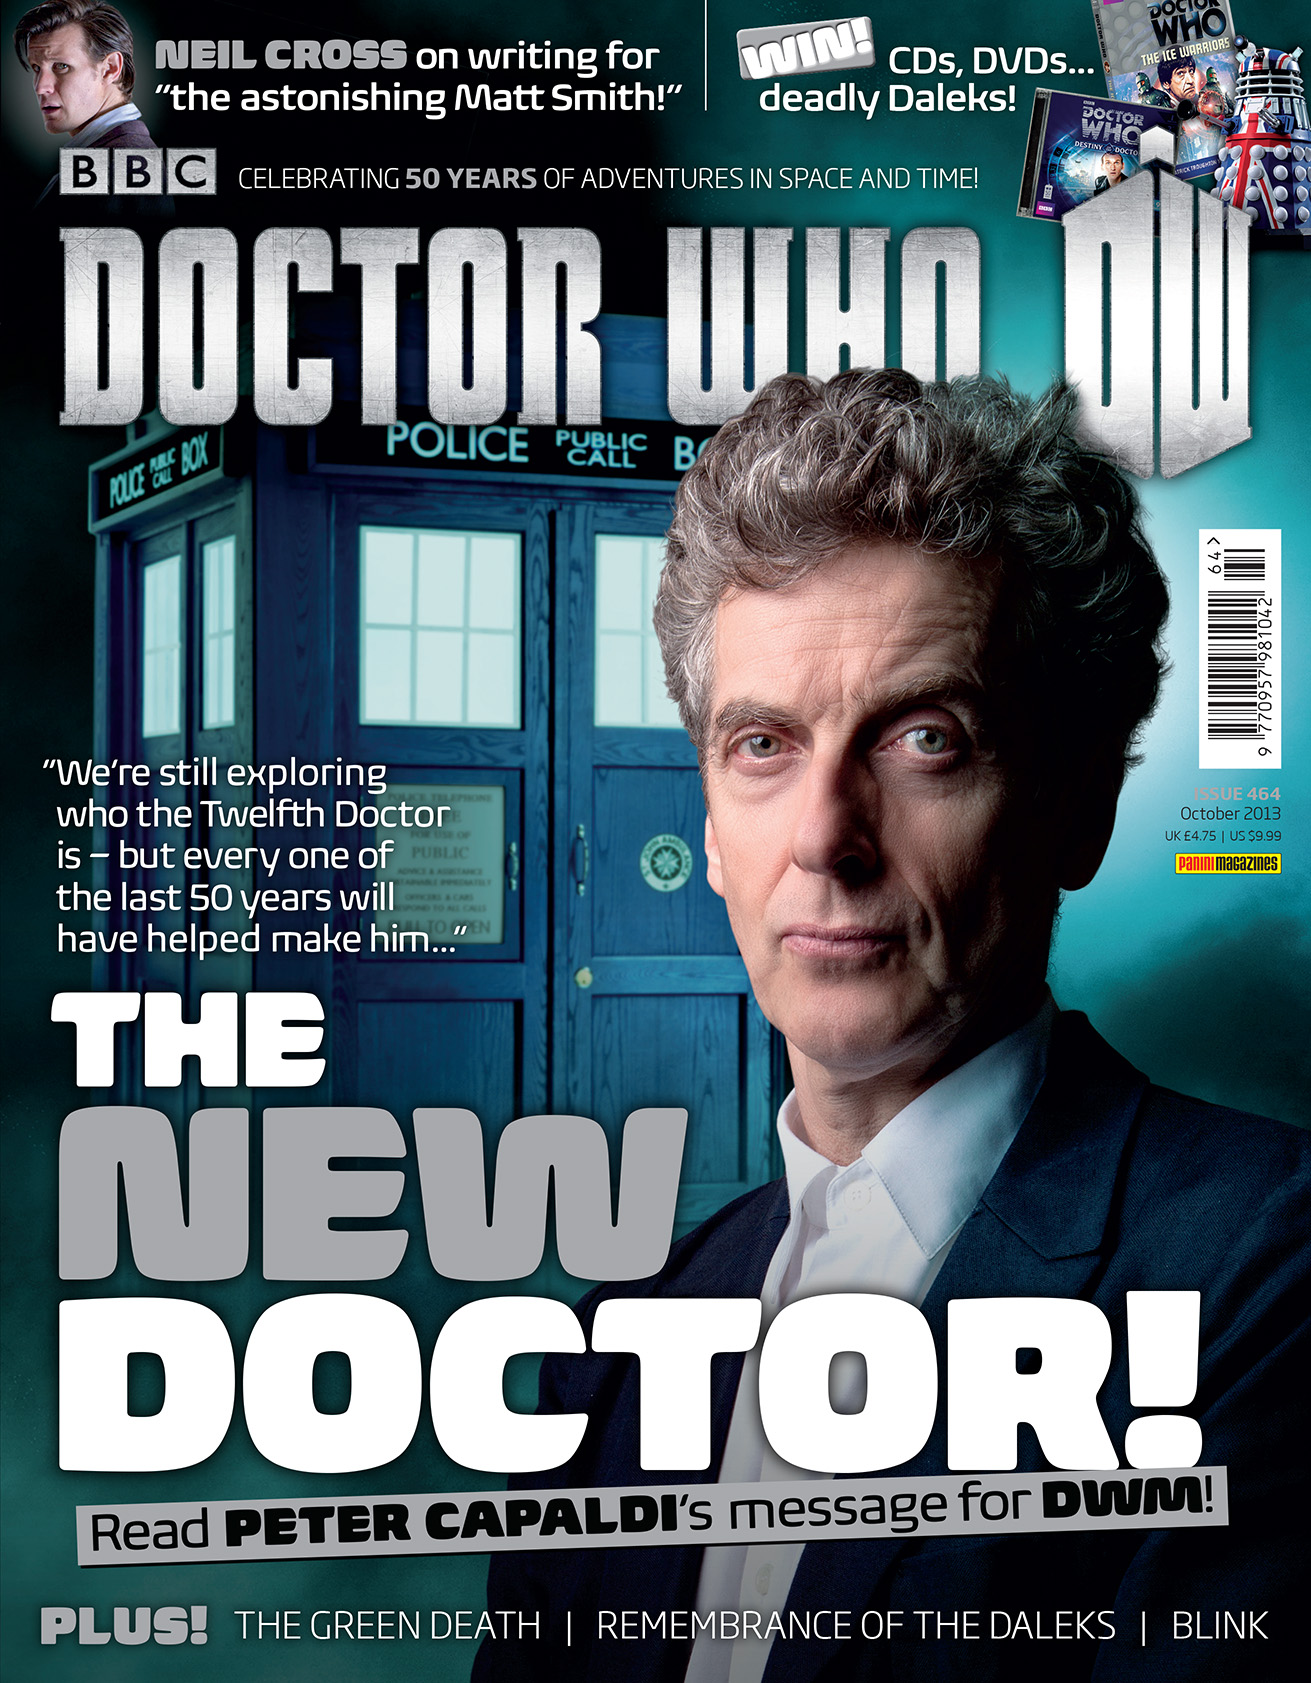 Doctor Who Magazine 464 (Credit: Doctor Who Magazine)